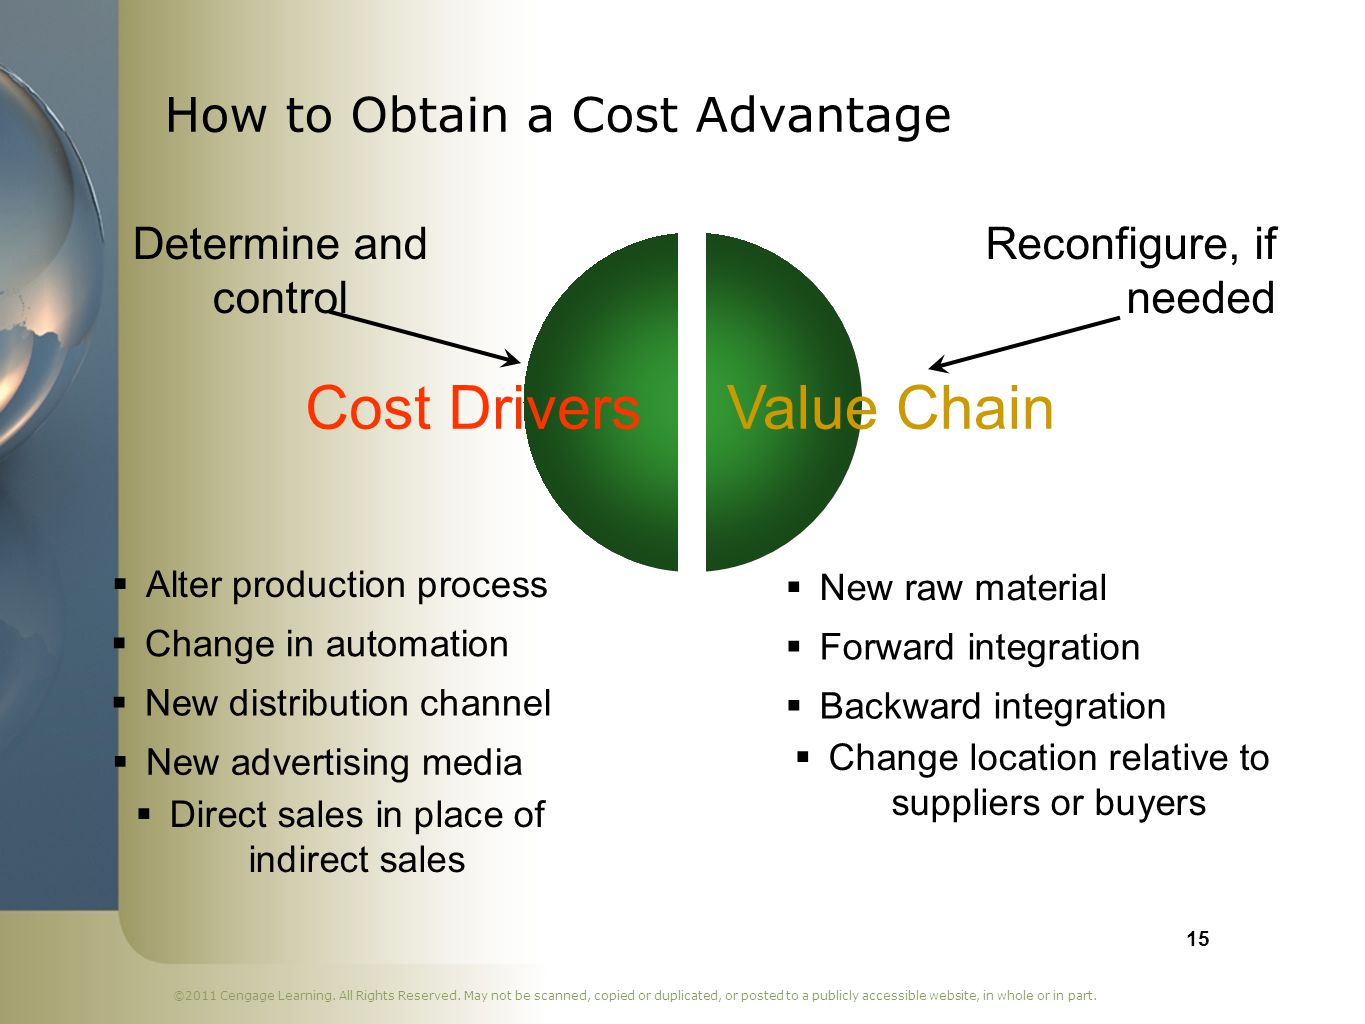 How to Obtain a Cost Advantage